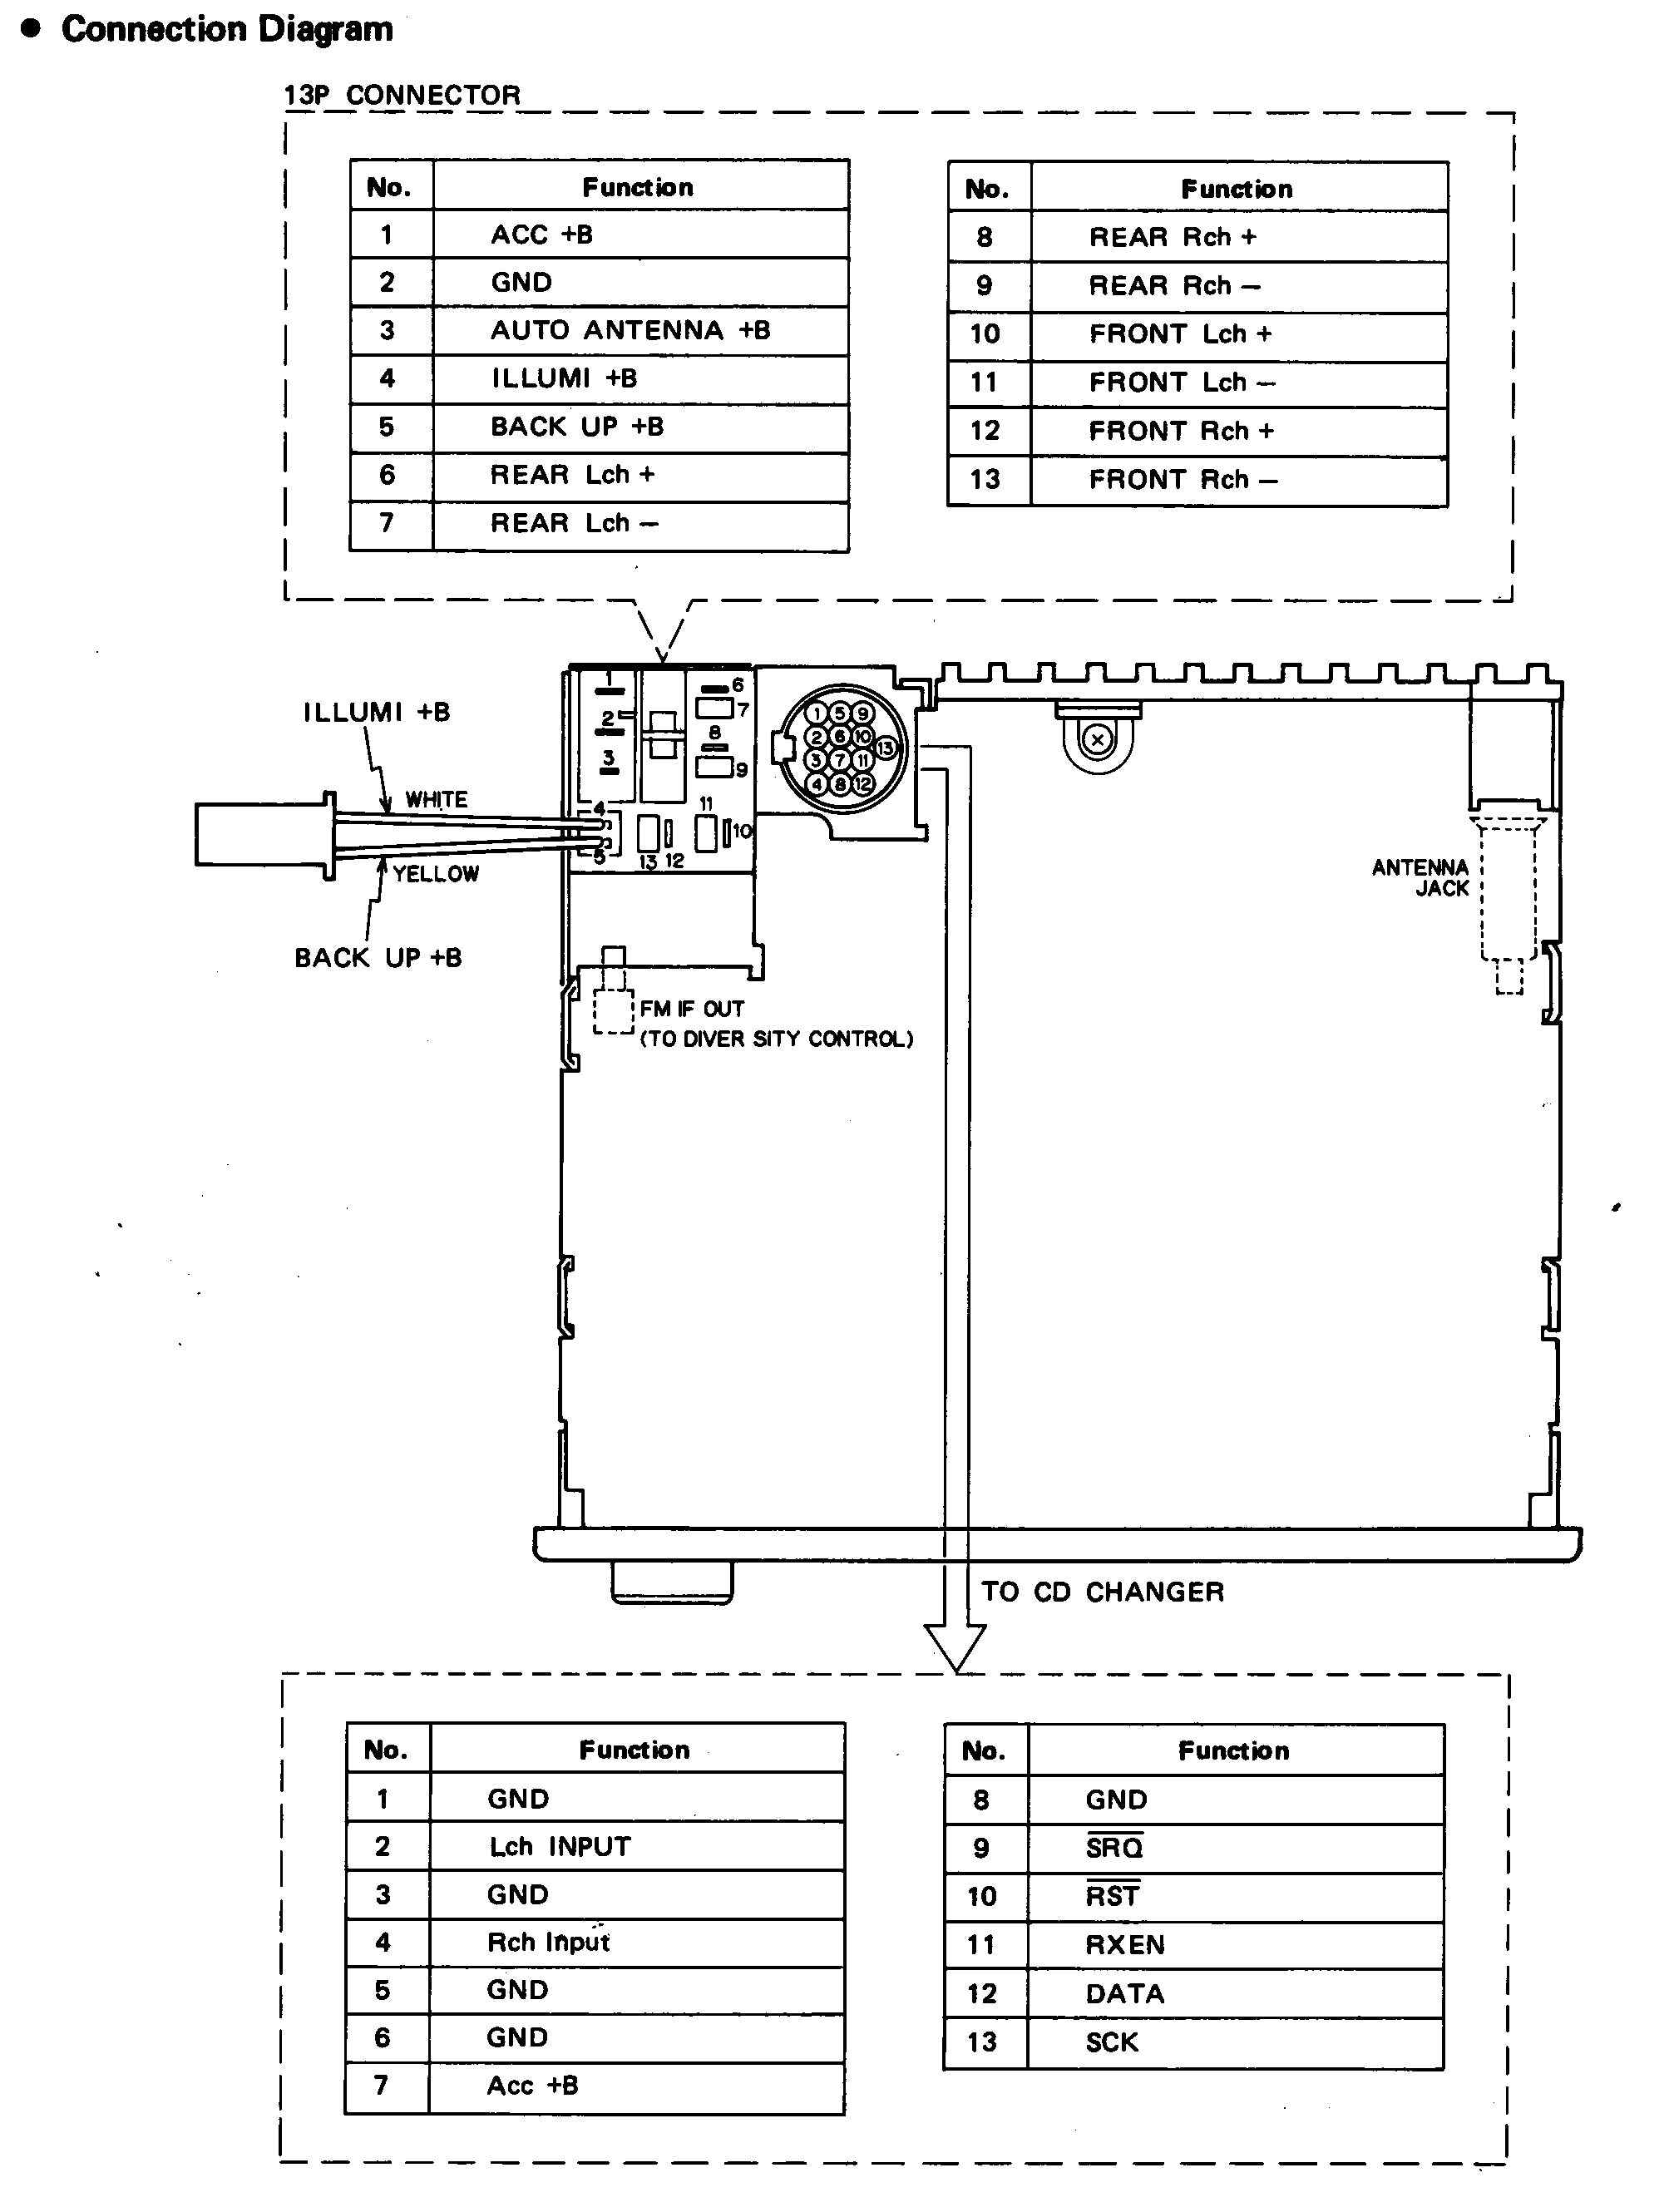 WireHarnessBMW121701 kenwood car radio wiring diagram wirdig readingrat net e46 speaker wiring diagram at creativeand.co